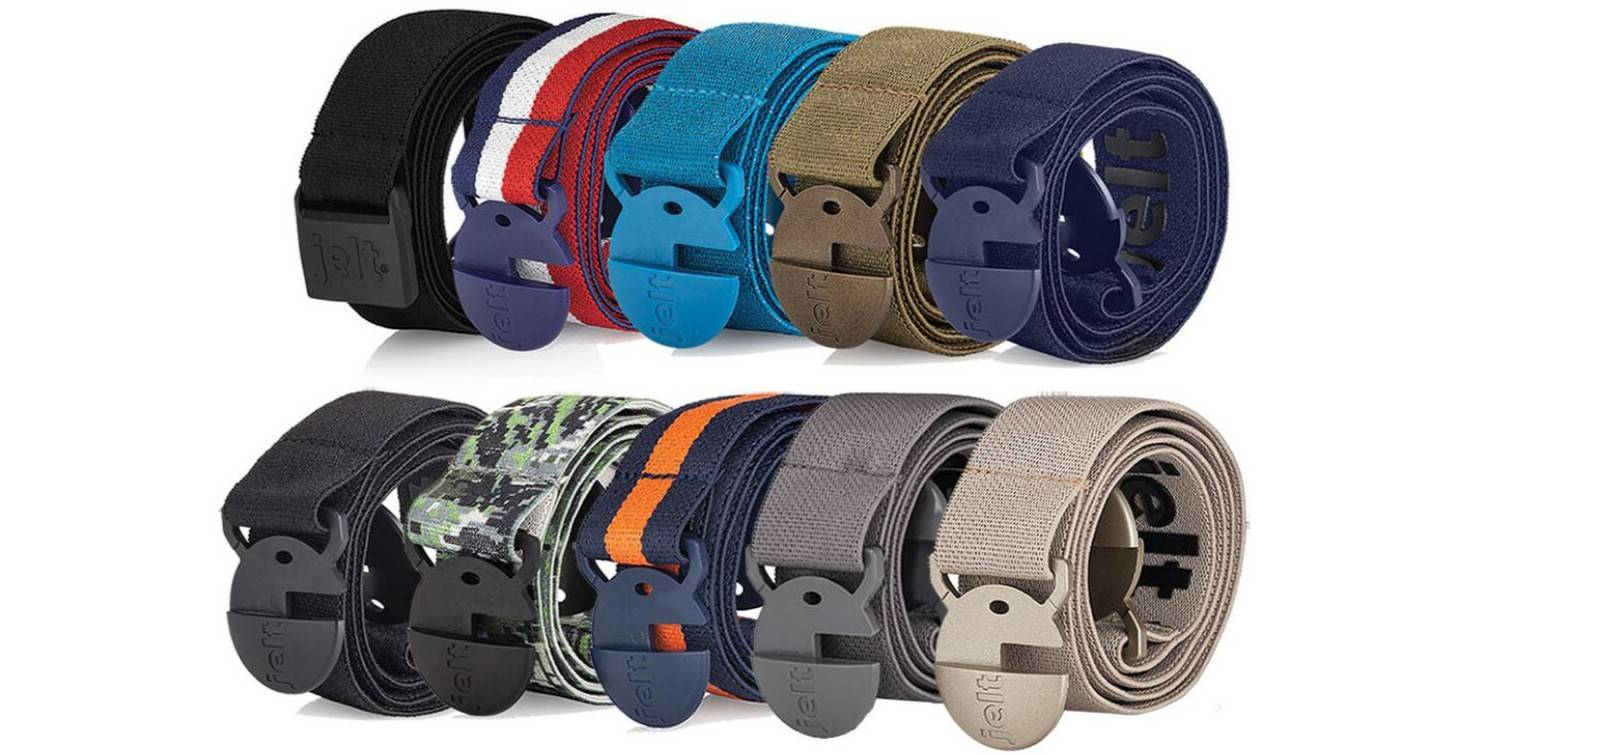 Image of collection of Jelt belts: First row  featuring: JeltX Adjustable black belt, USA red, white and blue; River Turquoise; Khaki Green and Denim Navy Blue. Second row featuring colors Black Granite; Digital Camo; 80's retro orange/navy; steel grey and khaki tan